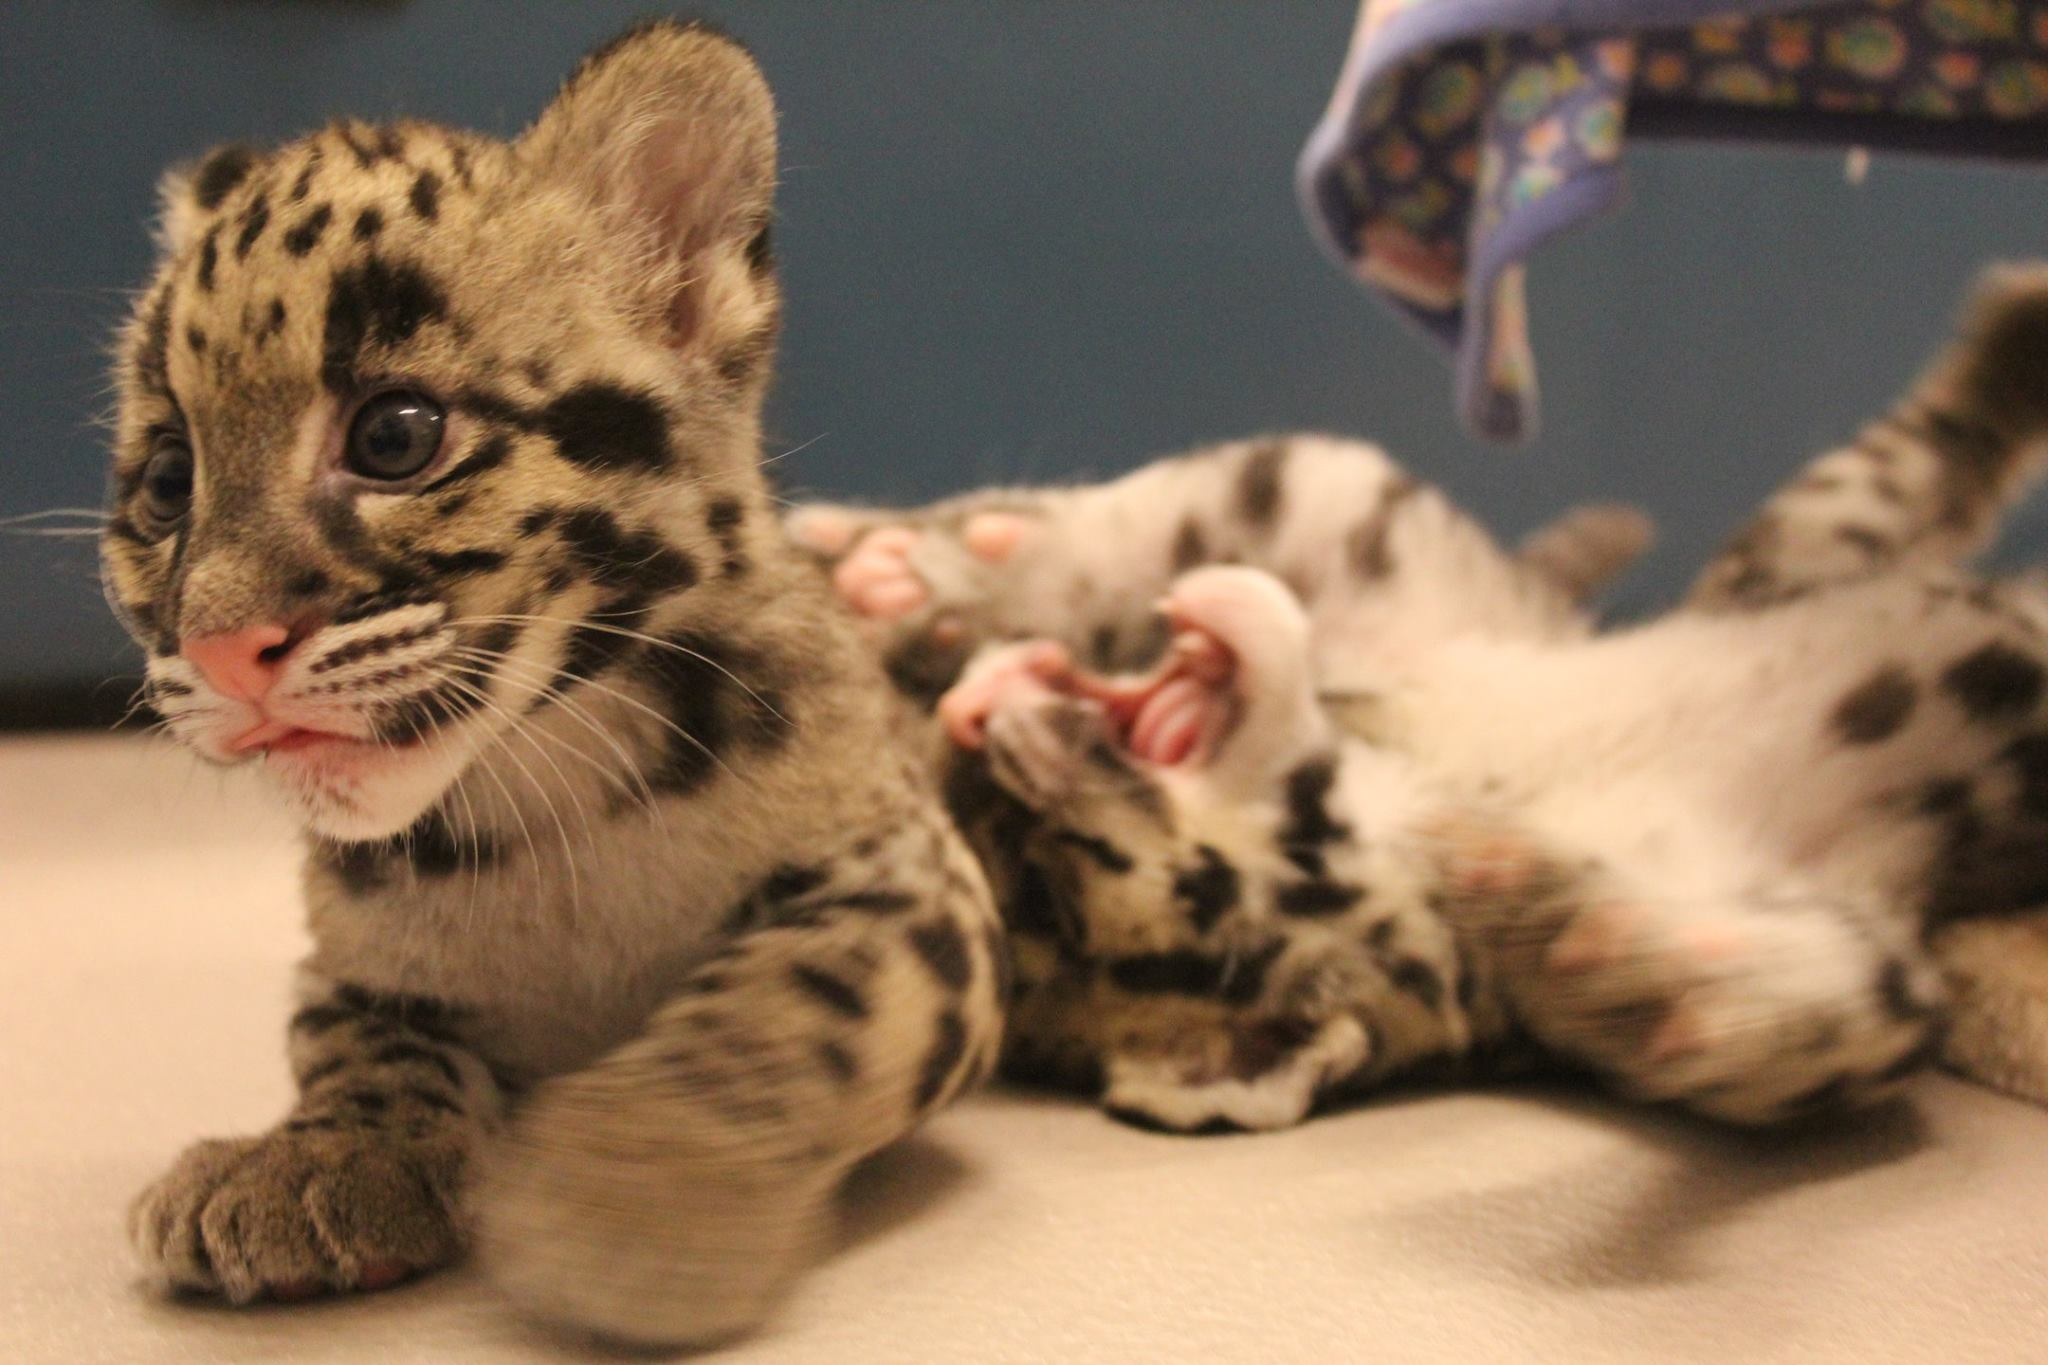 toronto zoo s clouded leopard cubs getting sassy citynews toronto